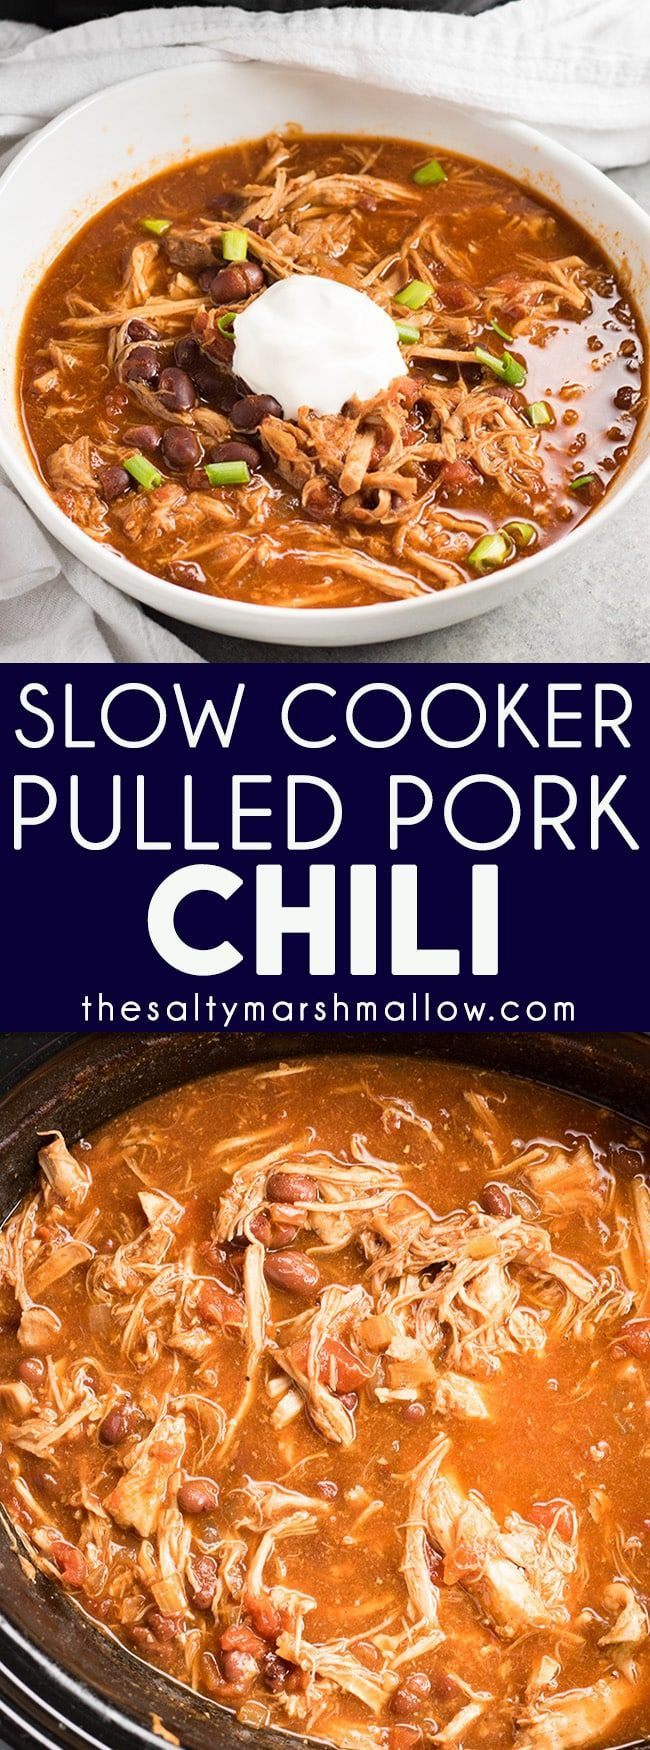 Slow Cooker Pulled Pork Chili - This amazing, sweet heat style pulled pork chili is absolutely mouthwatering!  Everything you love about pulled pork made into a hearty chili that's packed with BBQ flavor and perfectly hearty for those cold fall and winter evenings!